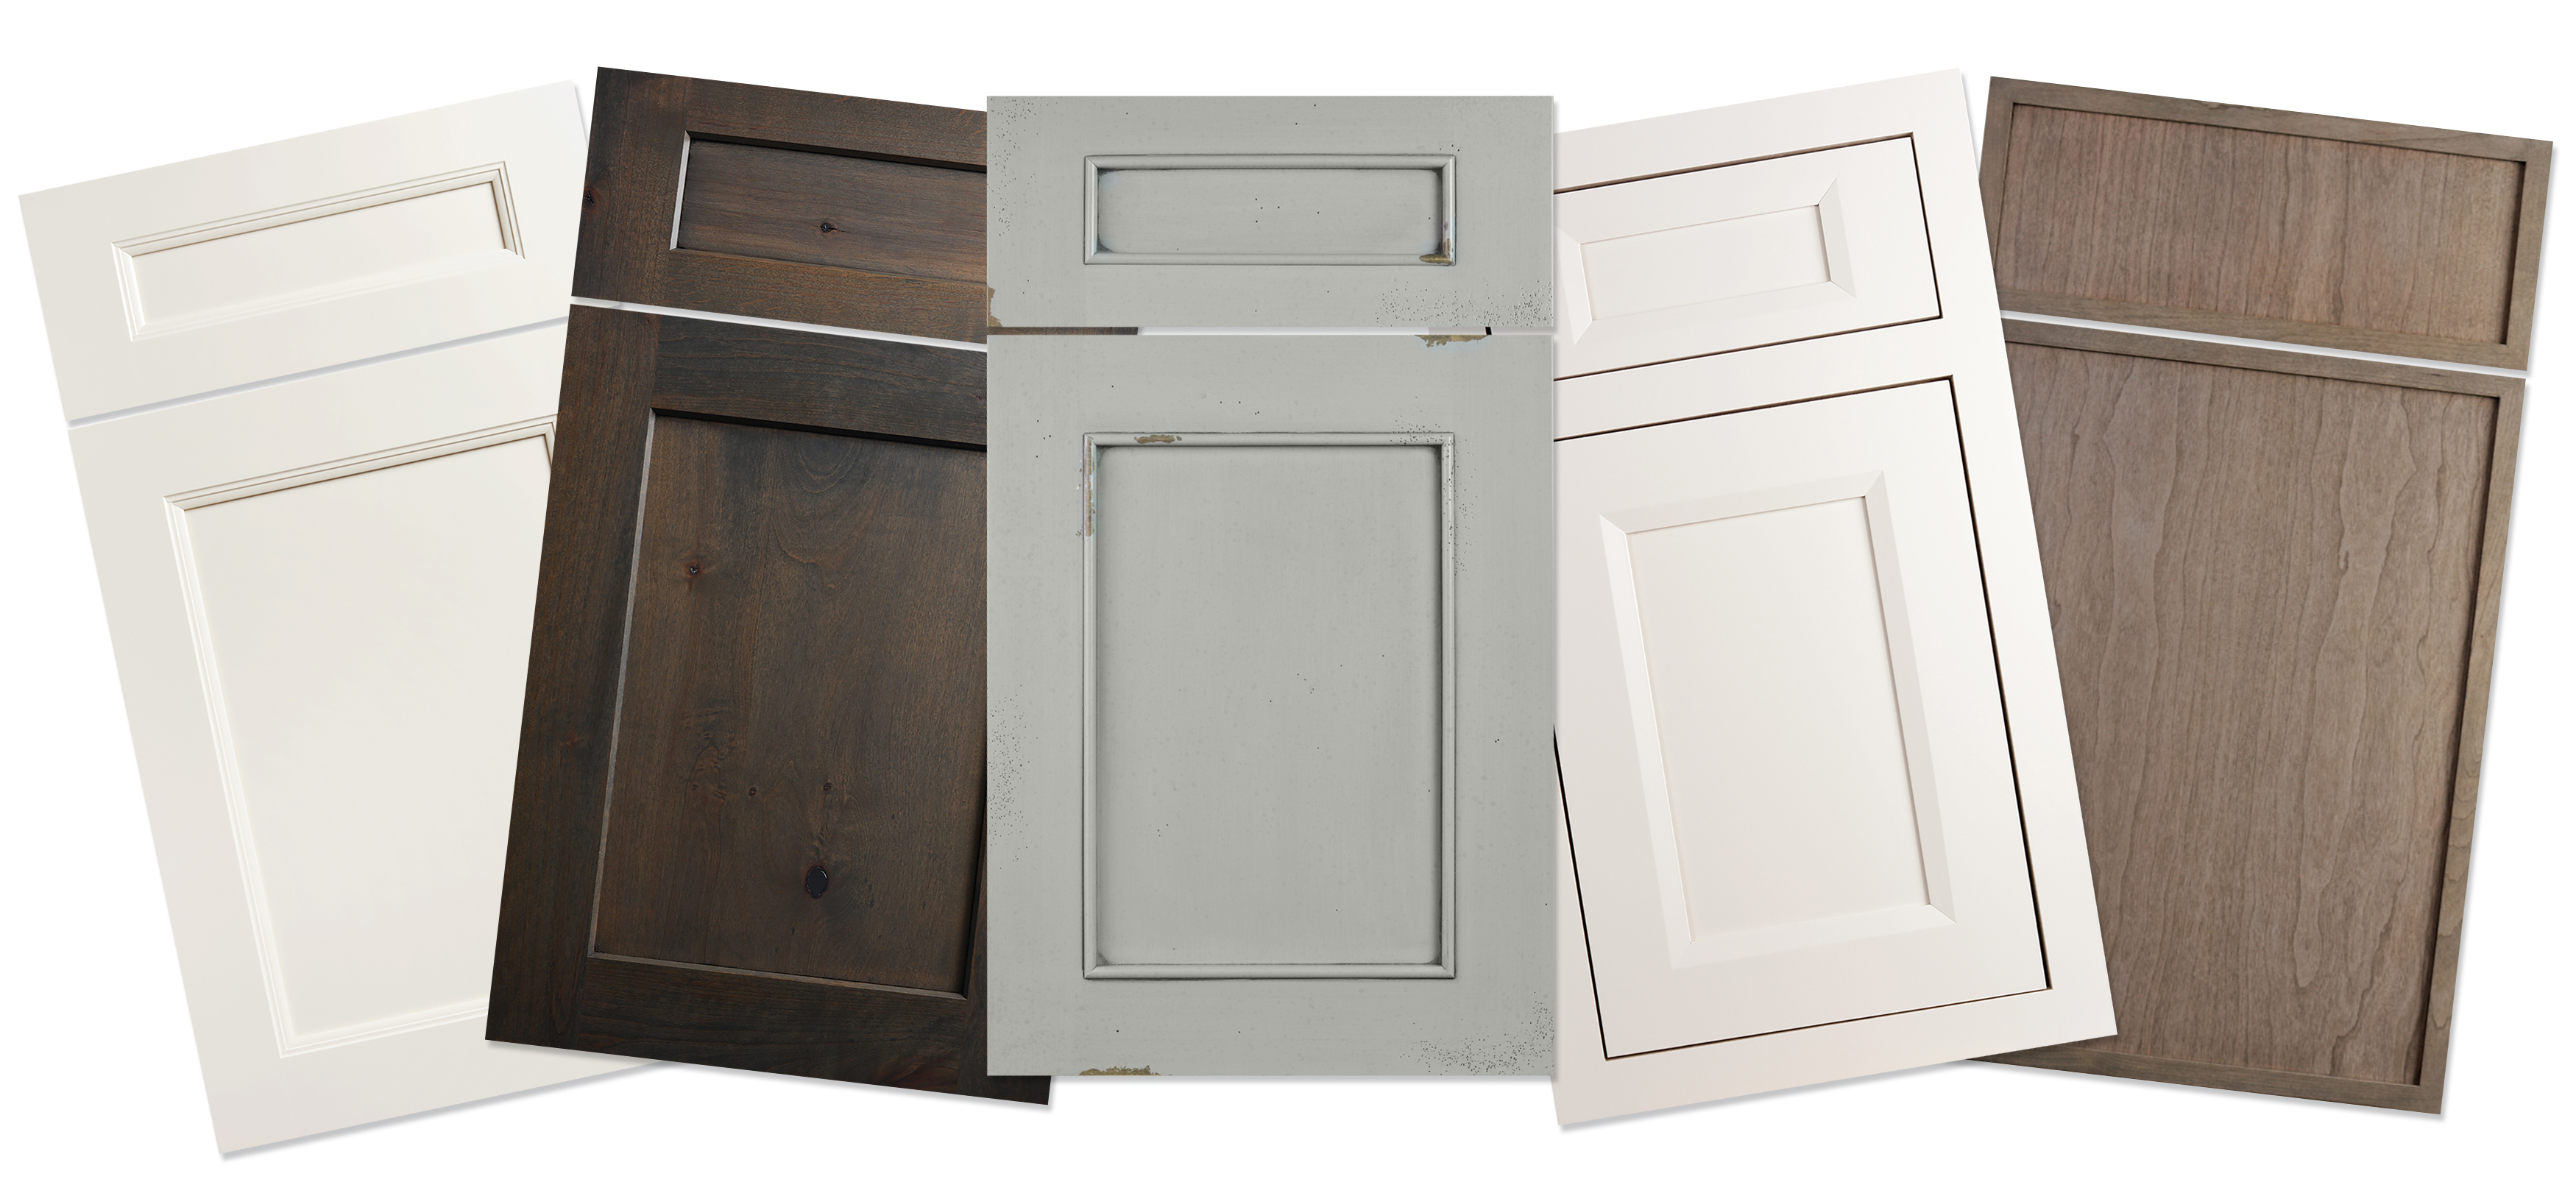 Flat Panel door styles from Dura Supreme Cabinetry